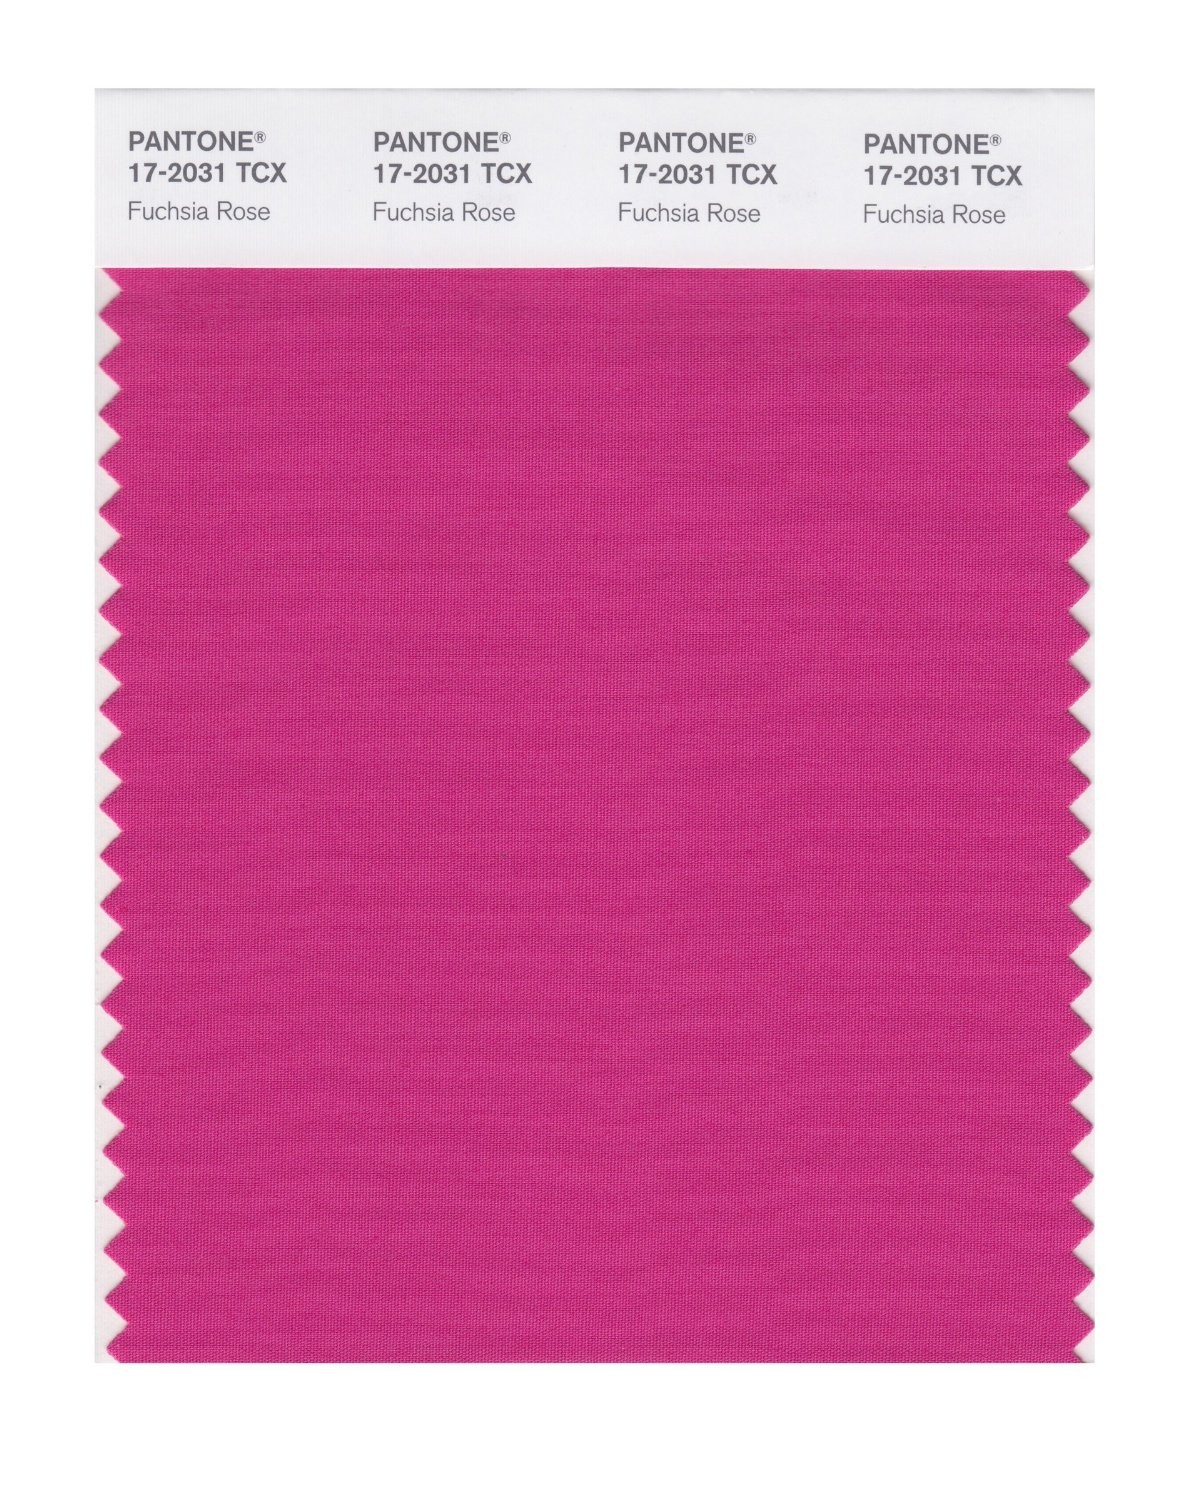 Pantone 17-2031 TCX Swatch Card Fuchsia Rose